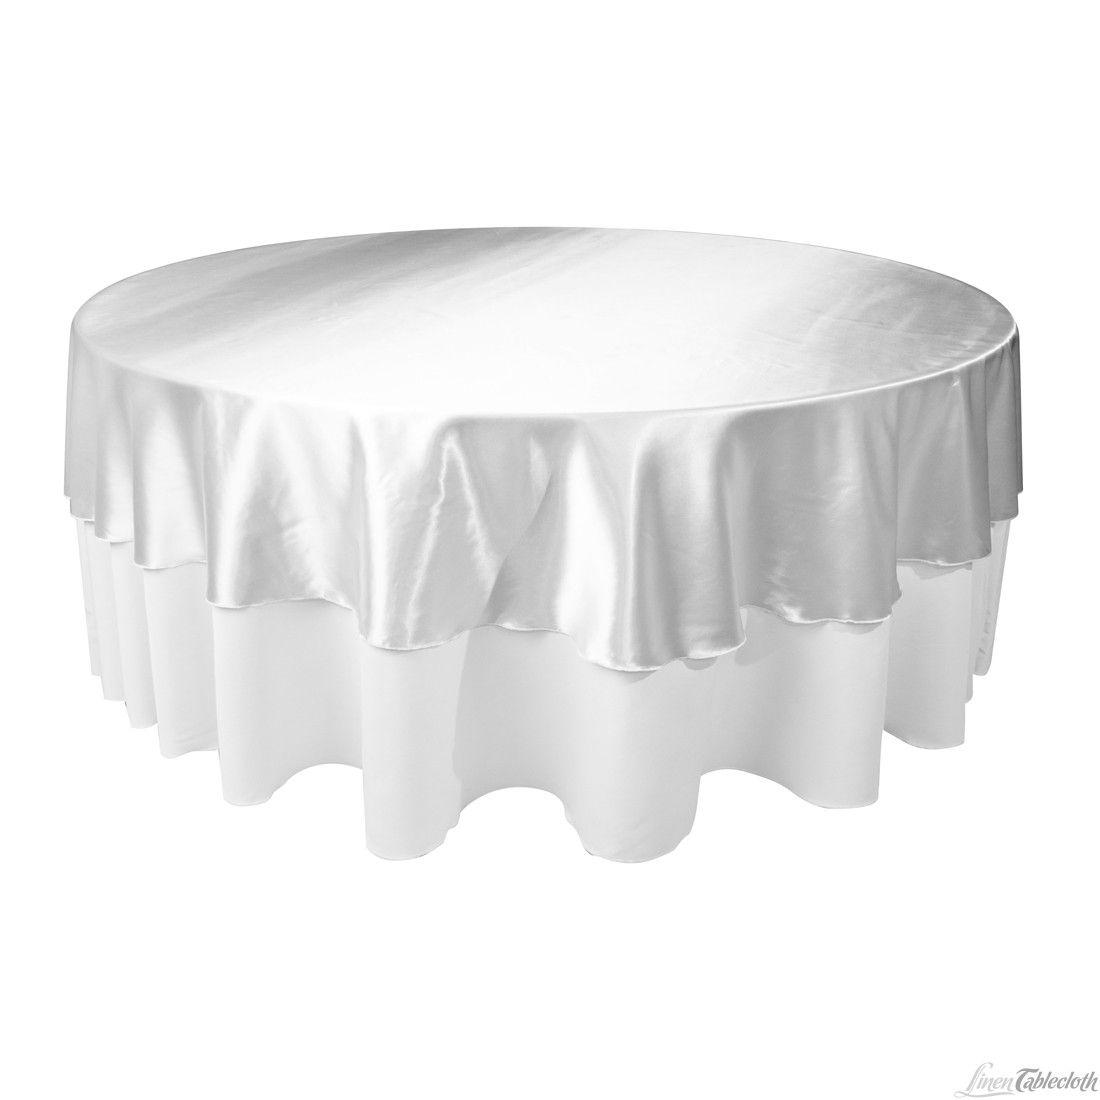 108 In Round Satin Tablecloth Overlay Silver For Only 12 99 At Linentablecloth Com Perfect For Any Wedding And E Table Cloth Round Tablecloth Elegant Table